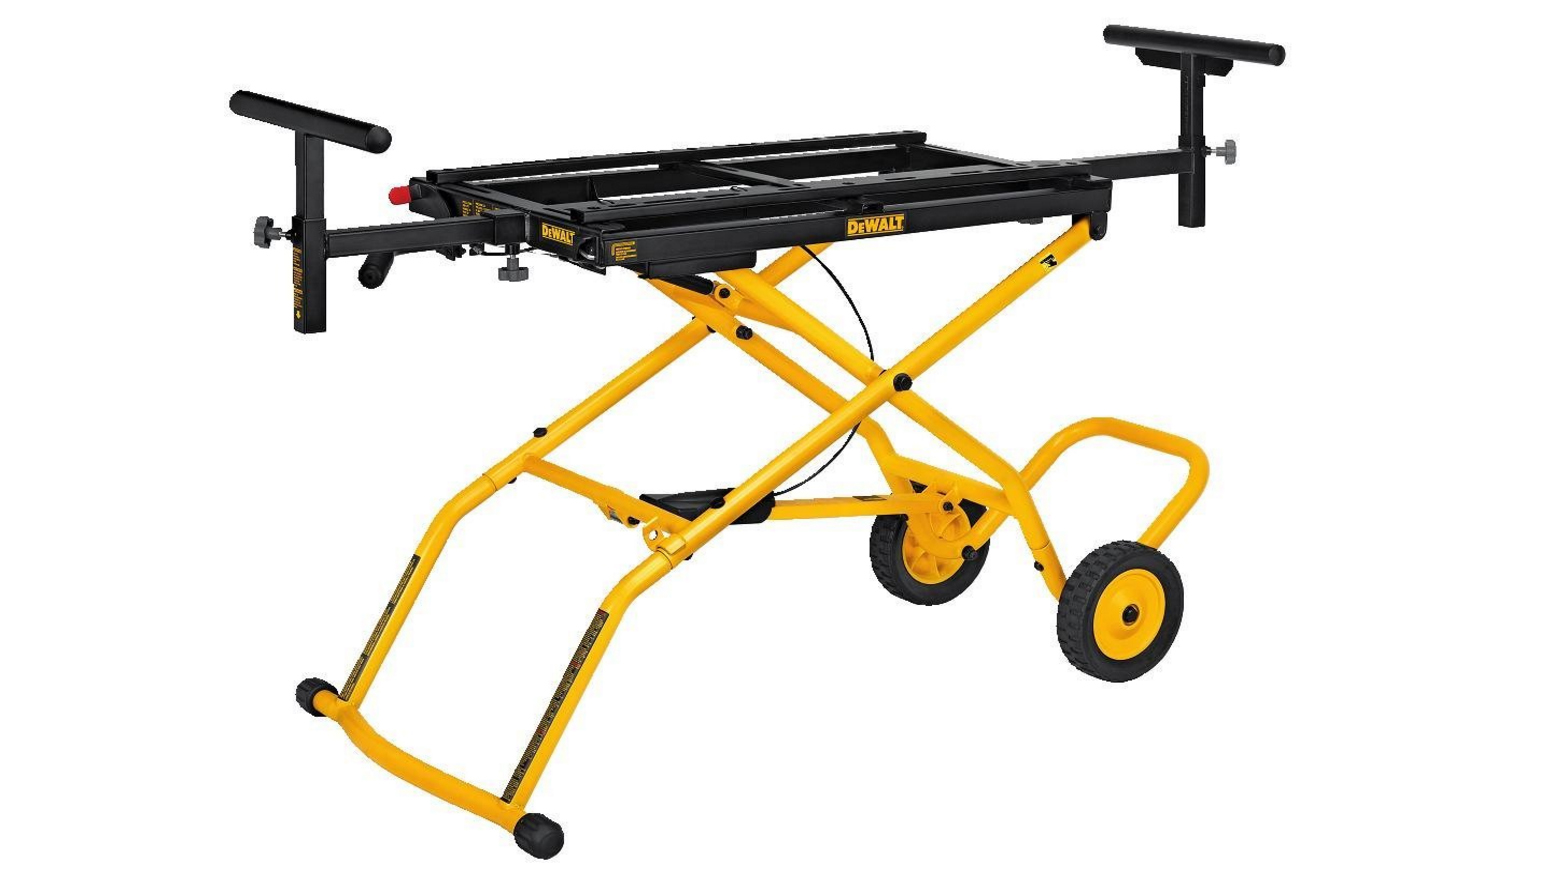 Amazon, cyber monday, cyber monday sales, cyber monday deals, tools, power tools, hand tools, woodworking tools, mitre saw stand, miter saw stand, dewalt, dewalt tools